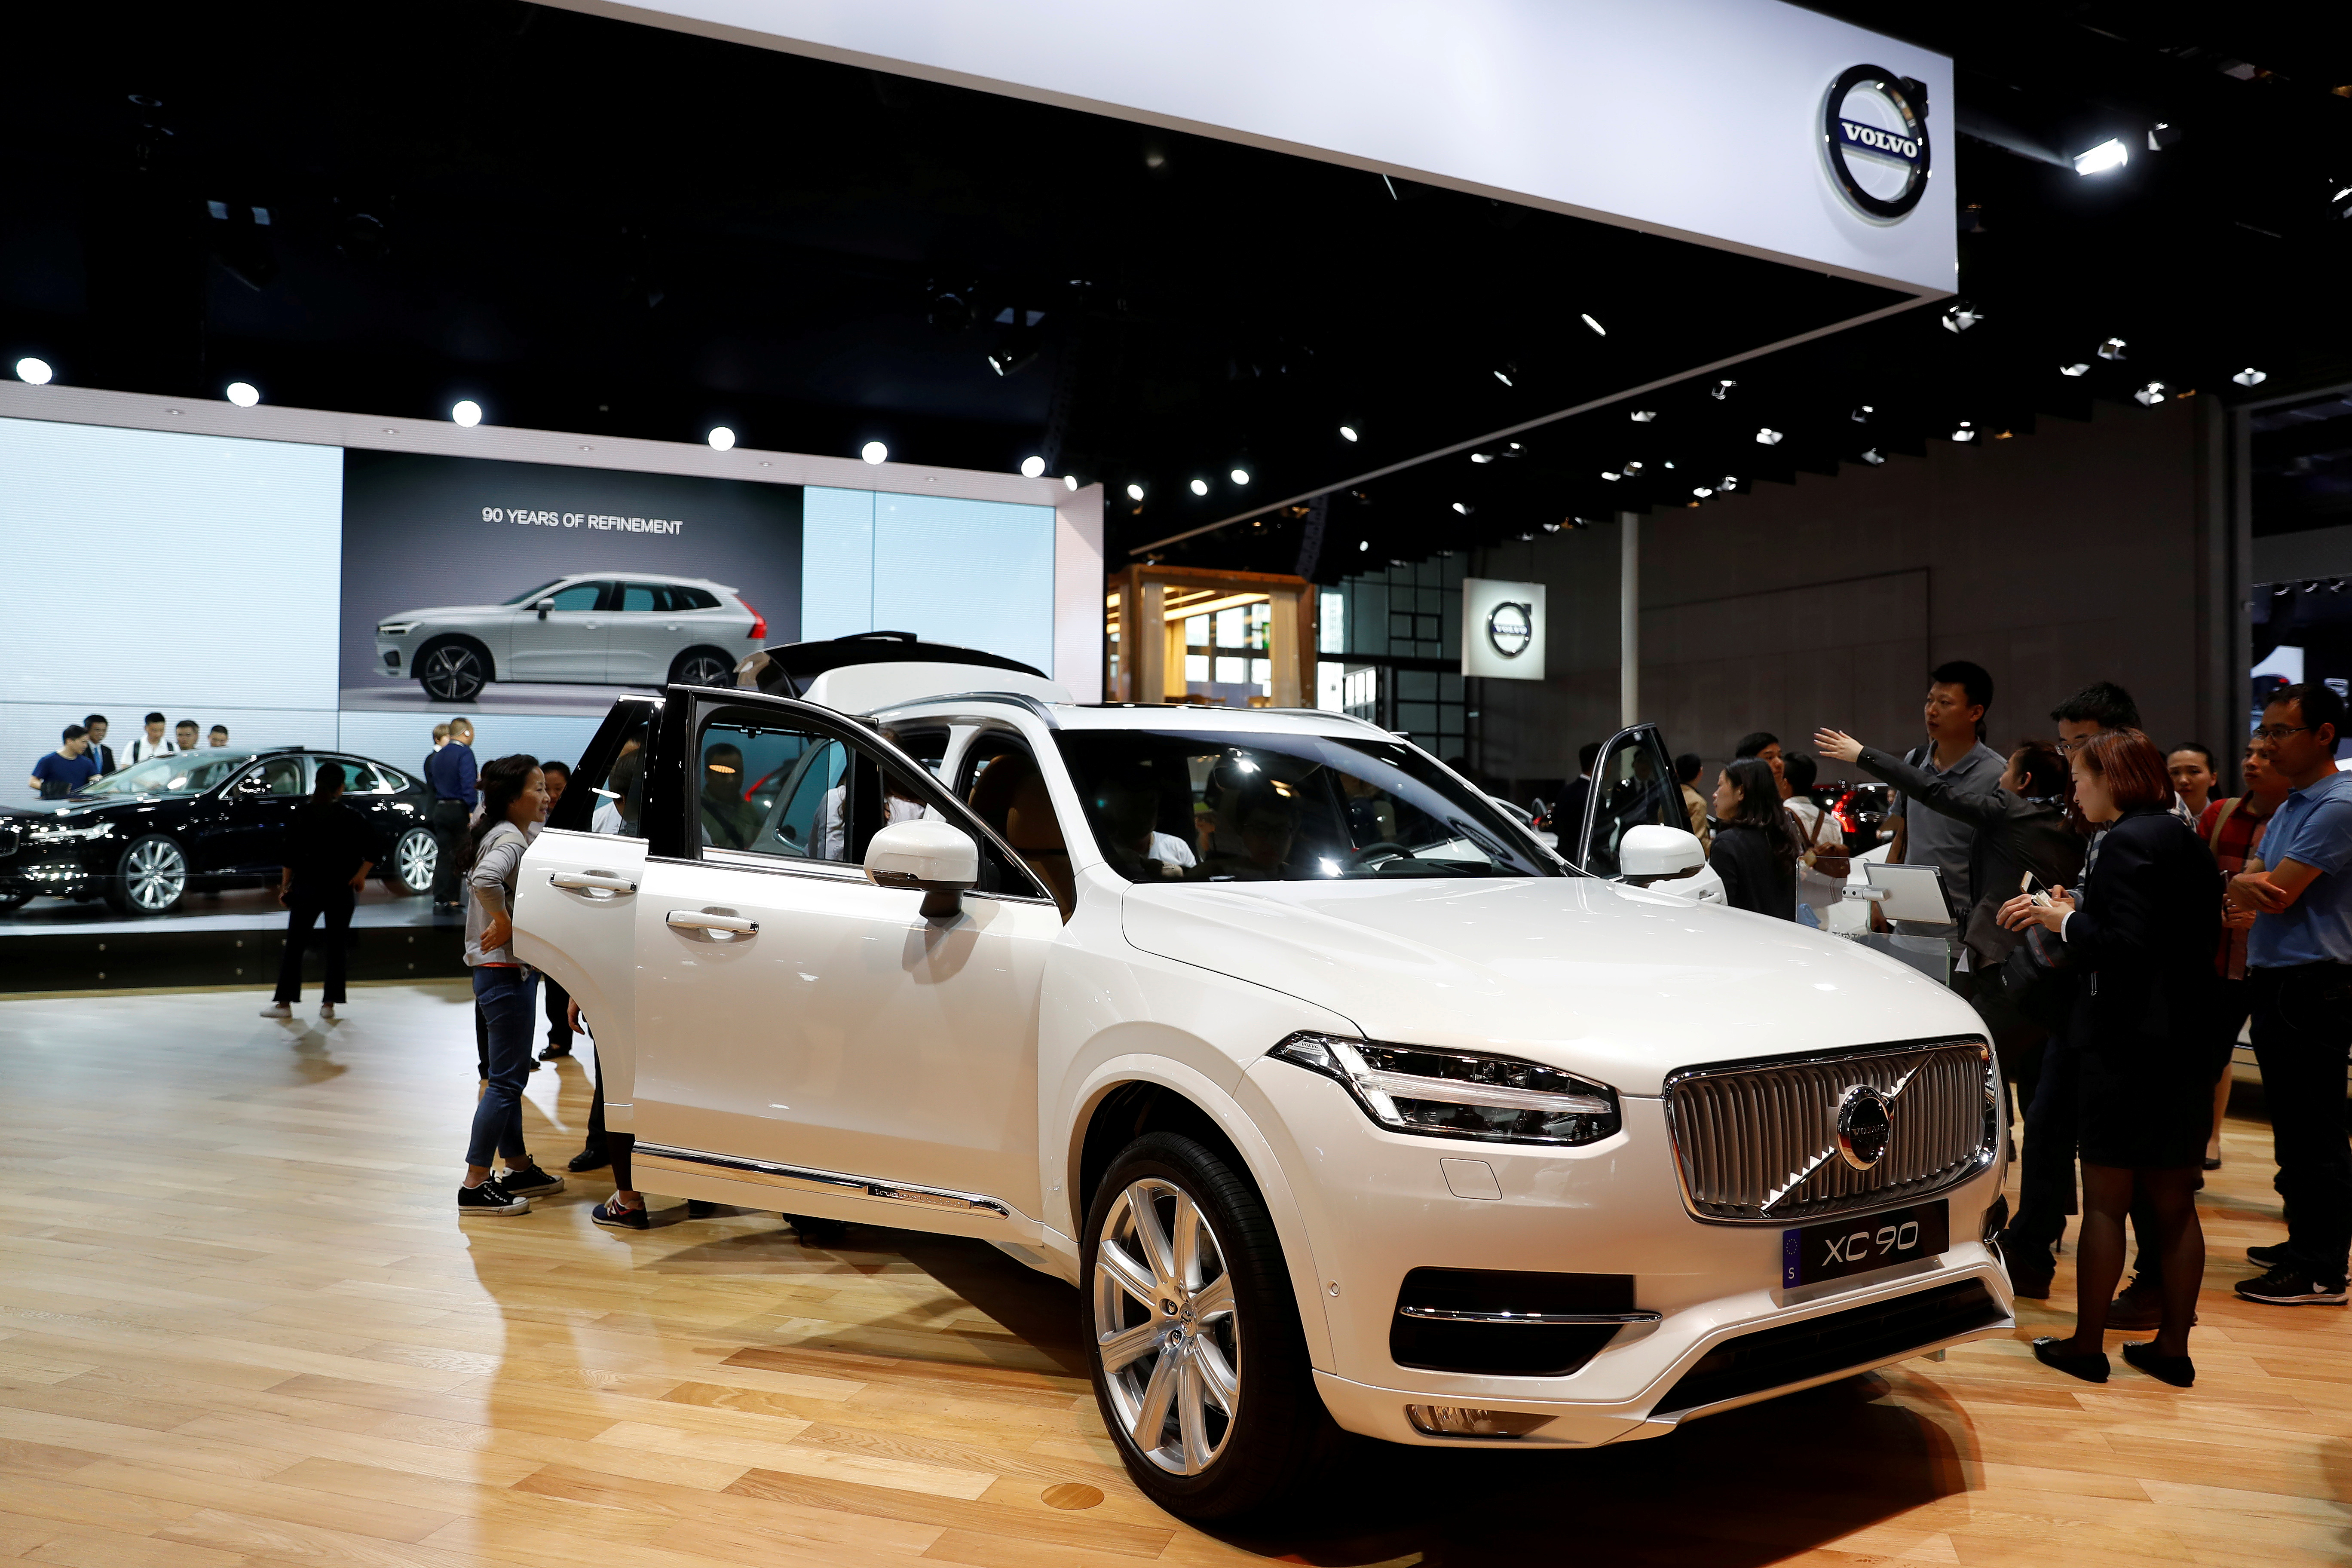 Visitors look at the Volvo XC90 at the Shanghai Auto Show, in Shanghai, China April 20, 2017. Volvo Cars said in June 2021 it intends to replace most of its gasoline-powered vehicles with new all-electric models by 2030. REUTERS/Aly Song/File Photo